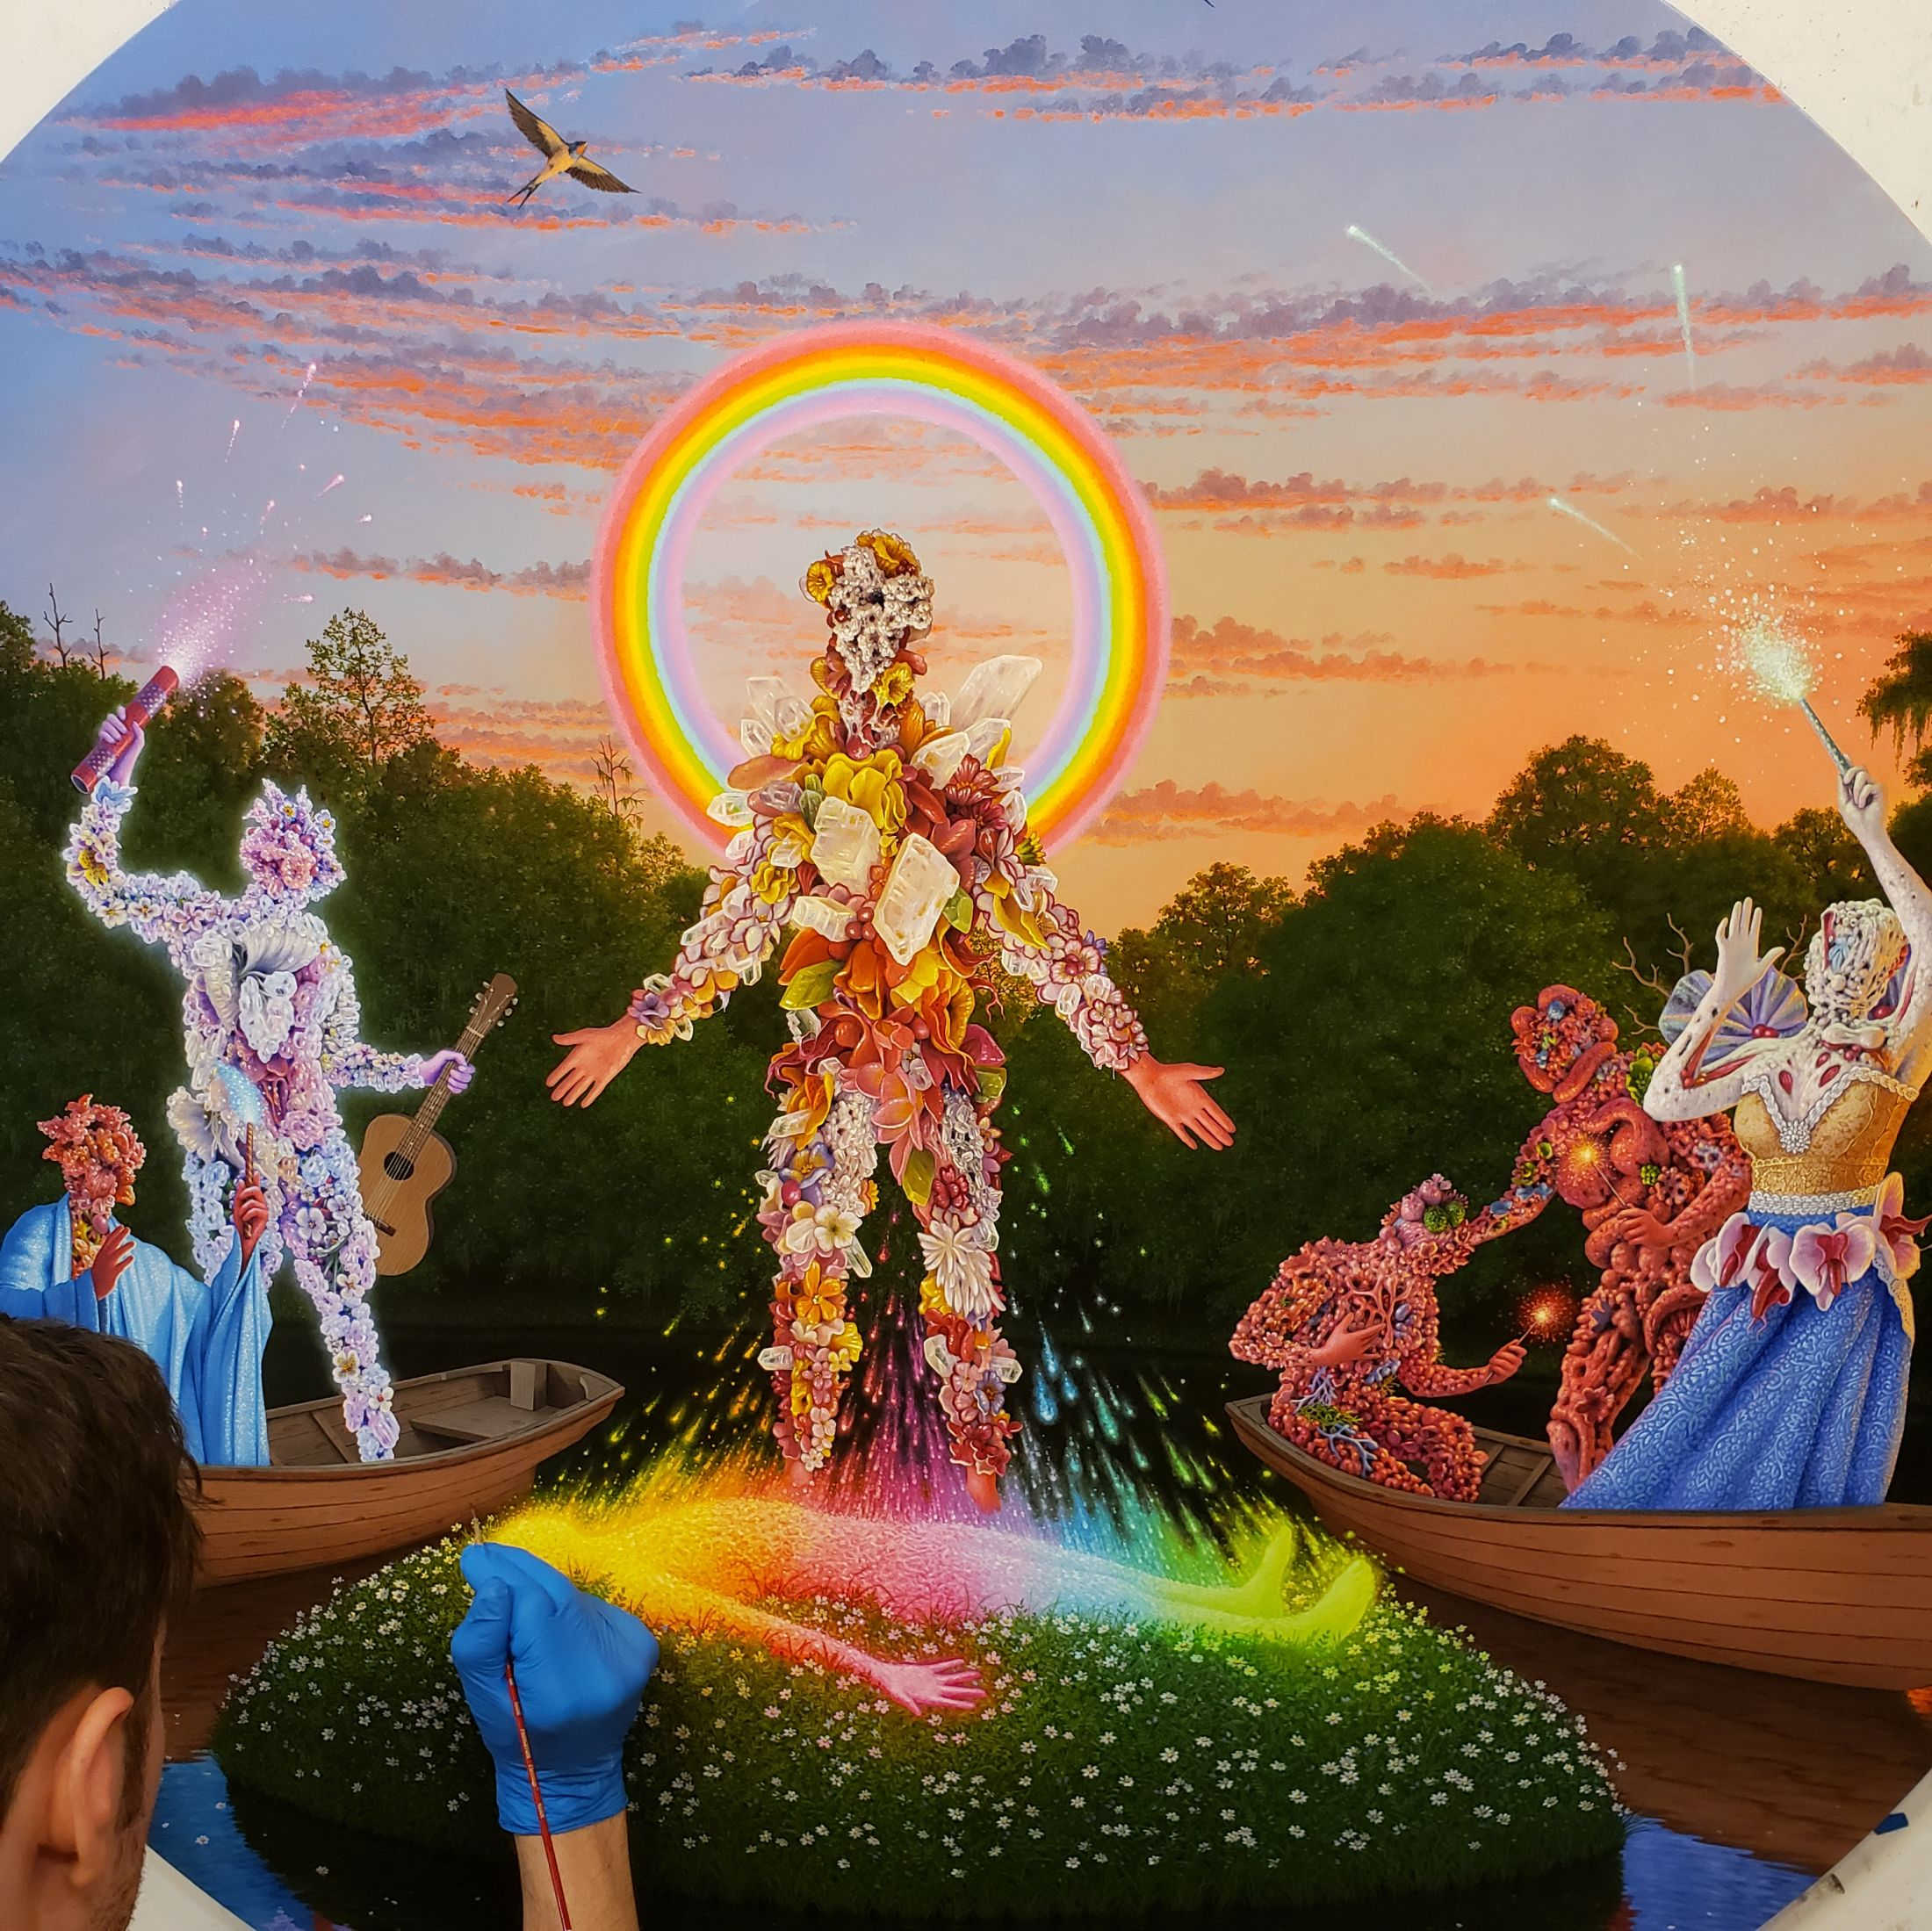 A painting of a humanoid creature whose body appears to be exposed organs and flowers, standing in a circular rainbow and performing some kind of raise-the-dead ceremony on a similar creature.